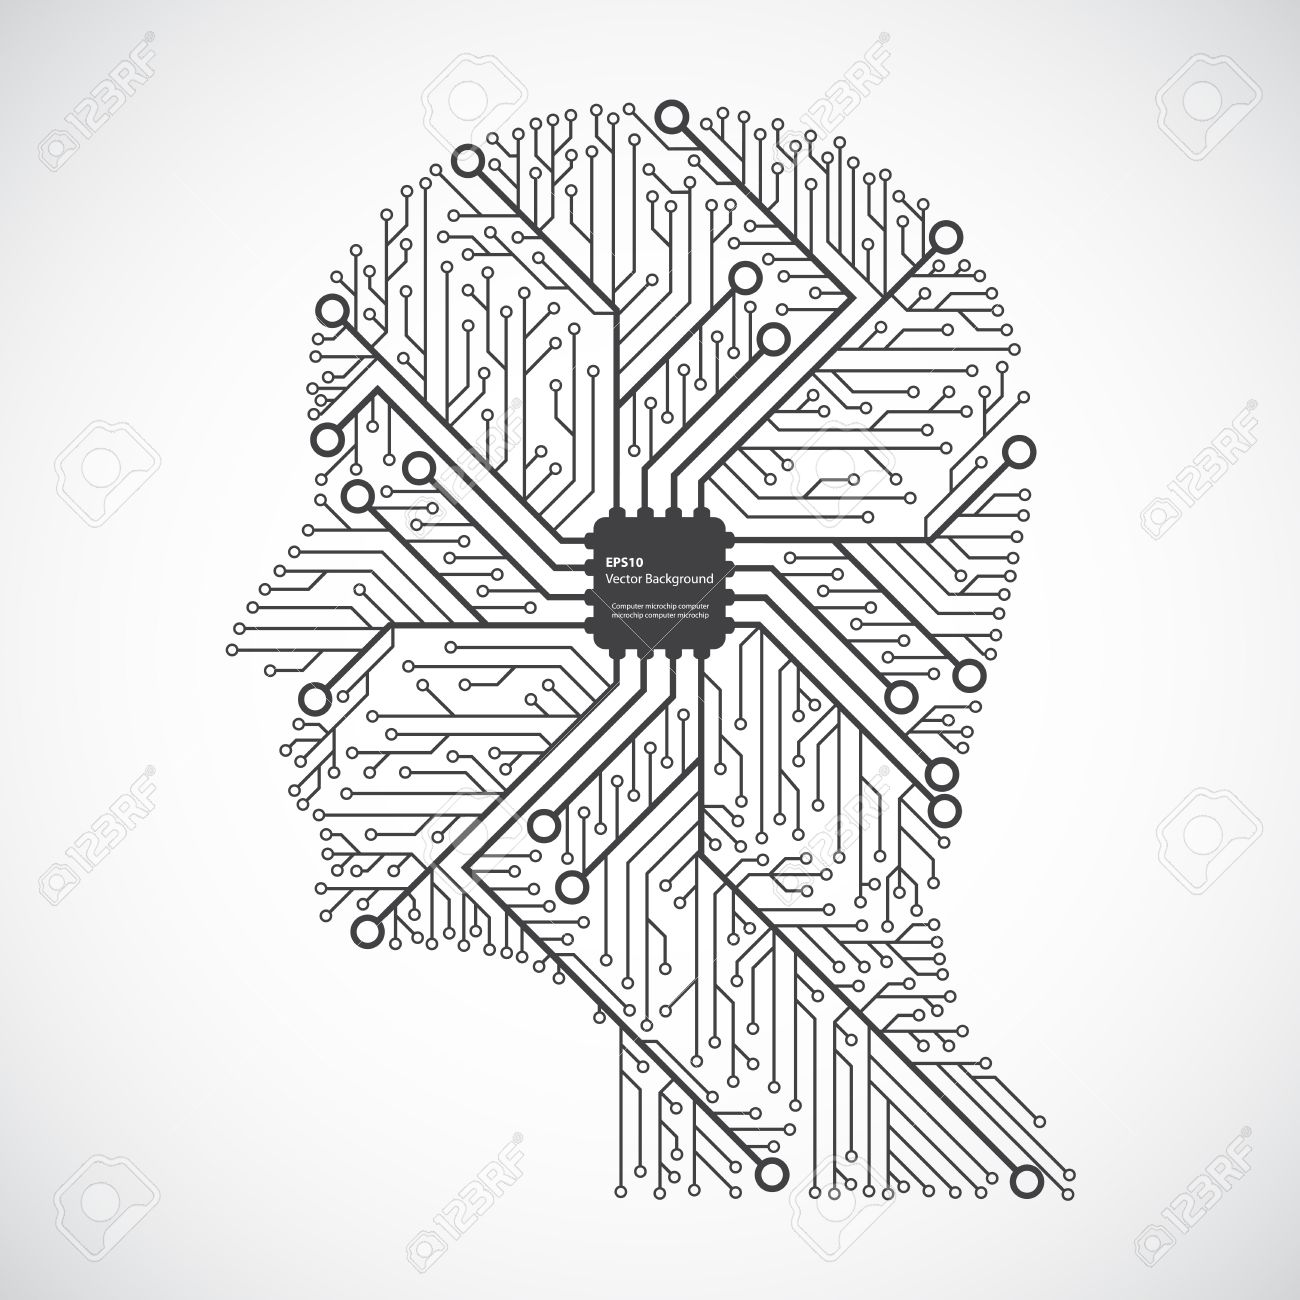 1300x1300 Head Computing Technology In An Electronic Circuit Chip. Design